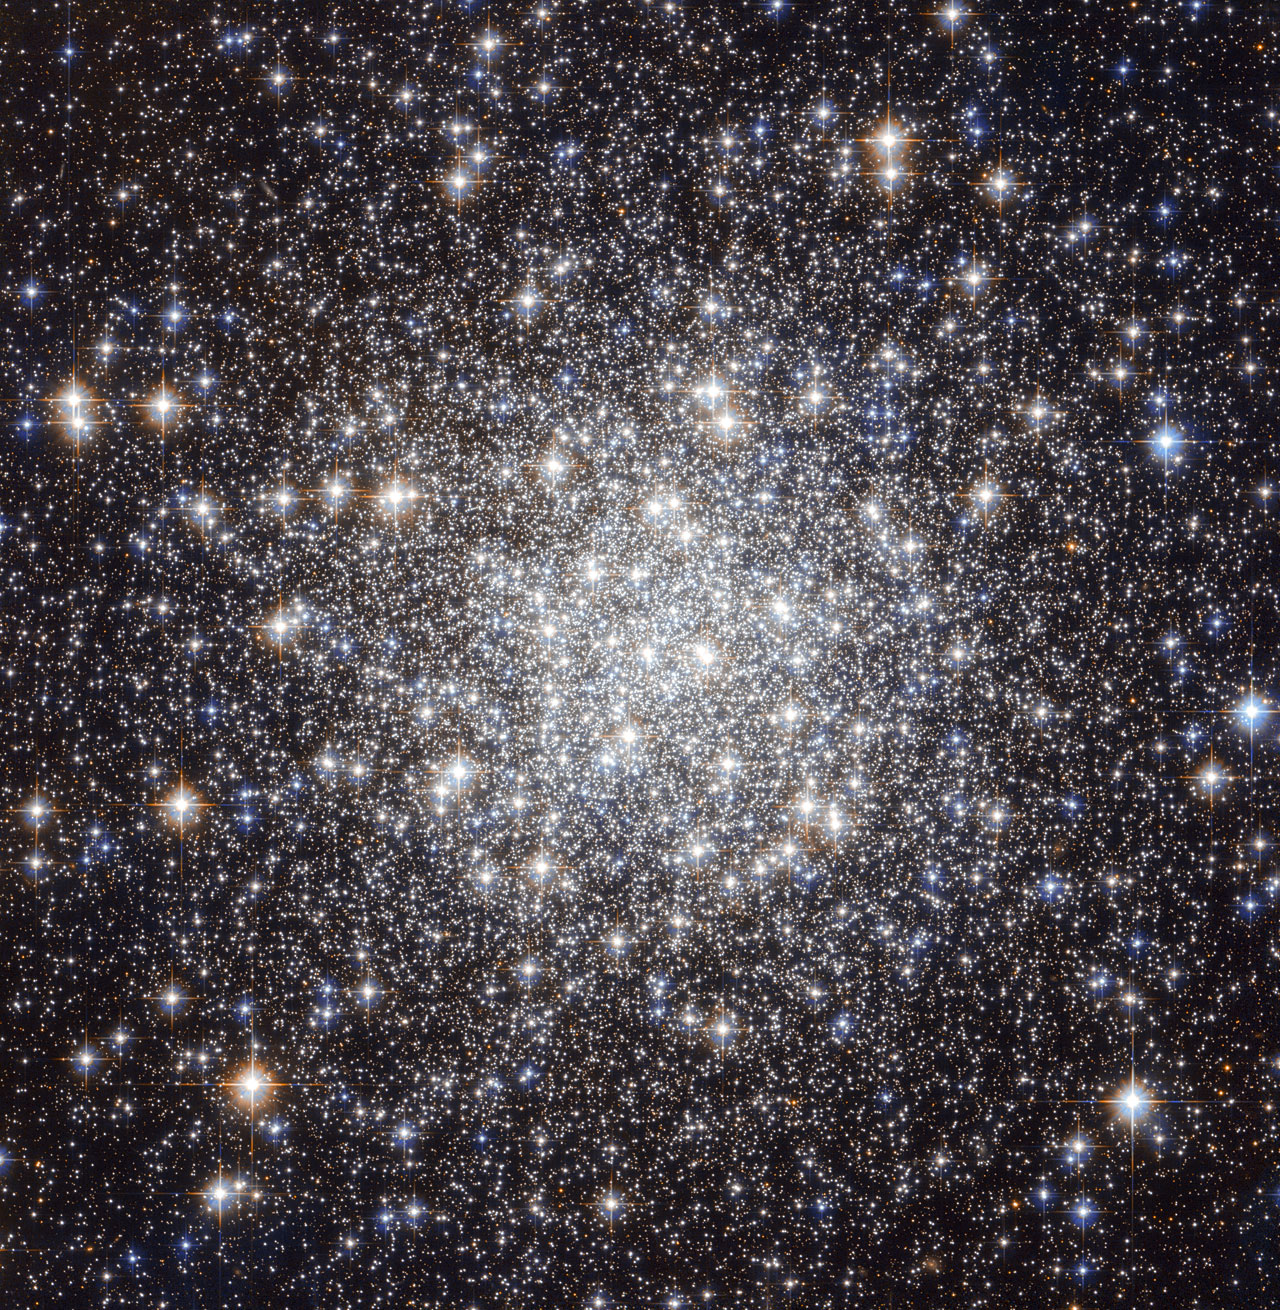 """The  NASA/ESA Hubble Space Telescope has produced this beautiful image of  the globular cluster Messier 56 (also known as M 56 or NGC 6779), which  is located about 33 000 light years away from the Earth in the  constellation of Lyra (The Lyre). The cluster is composed of a large  number of stars, tightly bound to each other by gravity. However,  this was not known when Charles Messier first observed it in January  1779. He described Messier 56 as """"a nebula without stars"""", like most  globular clusters that he discovered — his telescope was not powerful  enough to individually resolve any of the stars visible here, making it  look like a fuzzy ball through his telescope's eyepiece. We clearly see  from Hubble's image how the development of technology over the years has  helped our understanding of astronomical objects. Astronomers  typically infer important properties of globular clusters by looking at  the light of their constituent stars. But they have to be very careful  when they observe objects like Messier 56, which is located close to the  Galactic plane. This region is crowded by """"field-stars"""", in other  words, stars in the Milky Way that happen to lie in the same direction  but do not belong to the cluster. These objects can contaminate the  light, and hence undermine the conclusions reached by astronomers.  A  tool often used by scientists for studying stellar clusters is the  colour-magnitude (or Hertzsprung-Russell) diagram. This chart compares  the brightness and colour of stars – which in turn, tells scientists  what the surface temperature of a star is. By  comparing high quality observations taken with the Hubble Space  Telescope with results from the standard theory of stellar evolution,  astronomers can characterise the properties of a cluster. In the case of  Messier 56, this includes its age, which at 13 billion years is  approximately three times the age of the Sun. Furthermore, they have  also been able to study the chemical"""